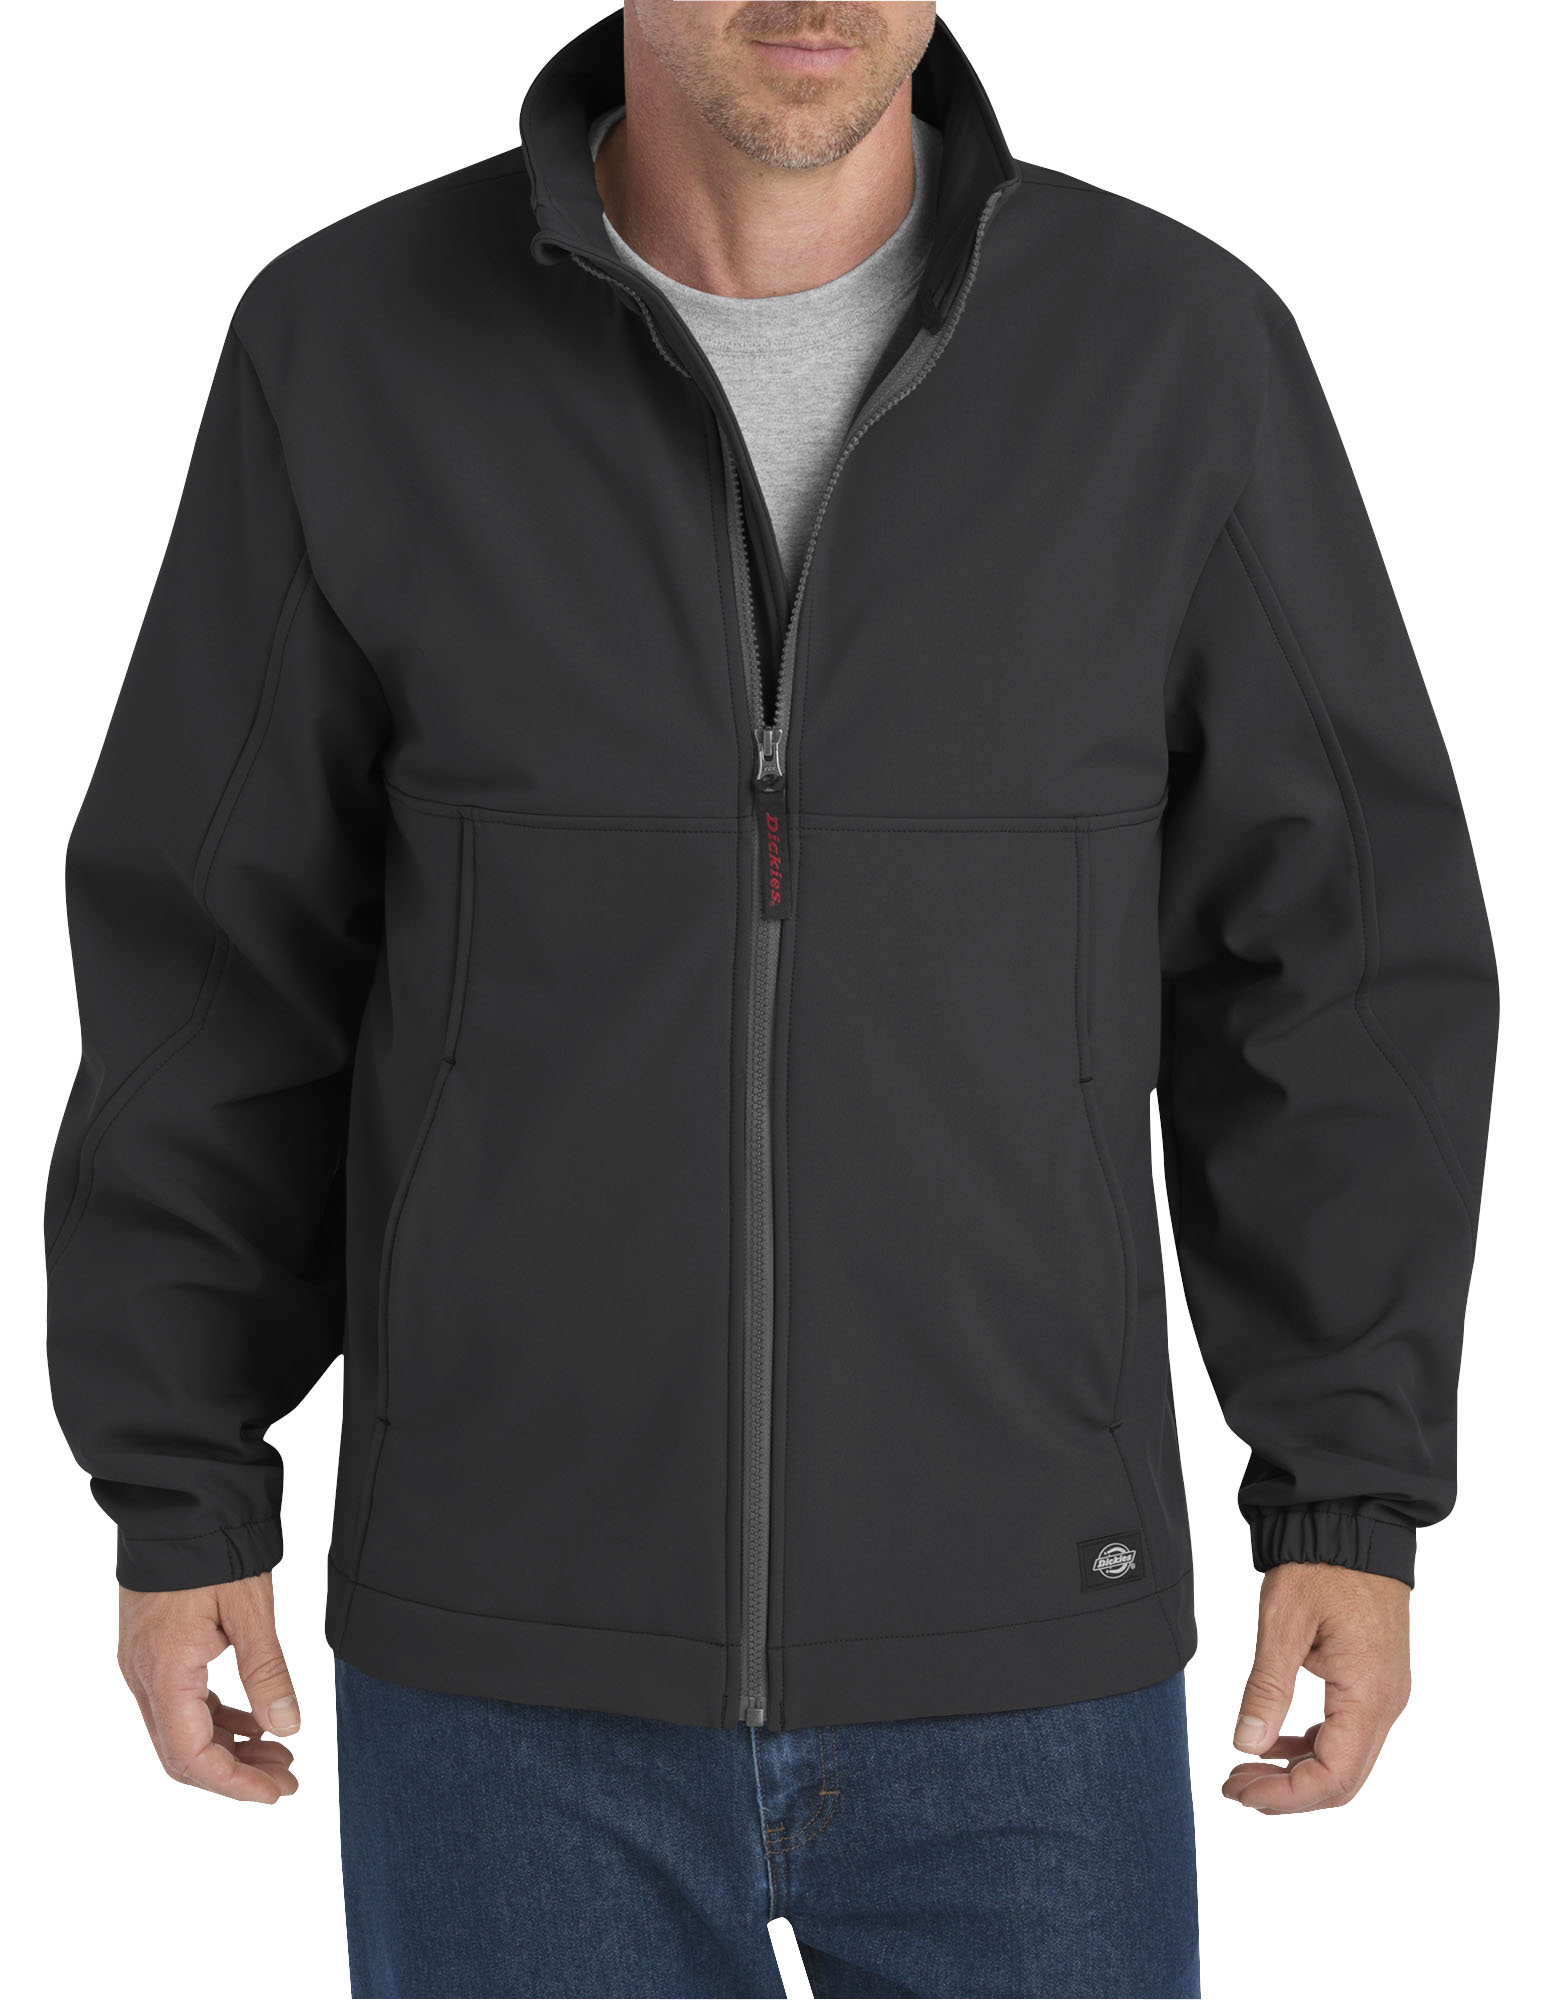 Performance Flex Softshell Jacket - Black (BK)